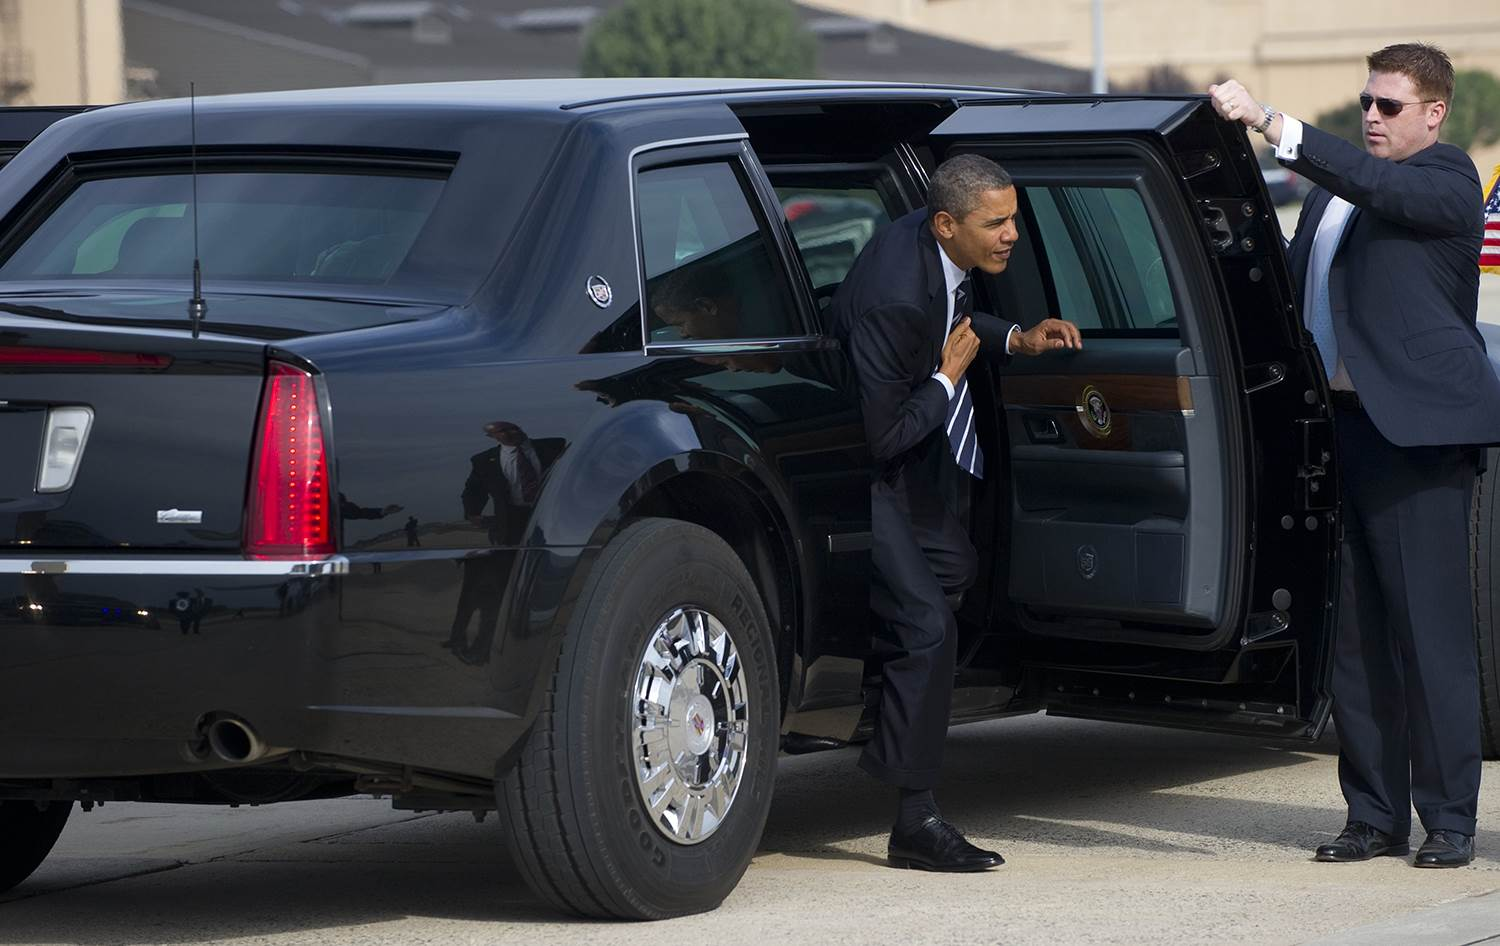 6c8145132-130703-obama-limo-834p-nbcnews-ux-2880-1000